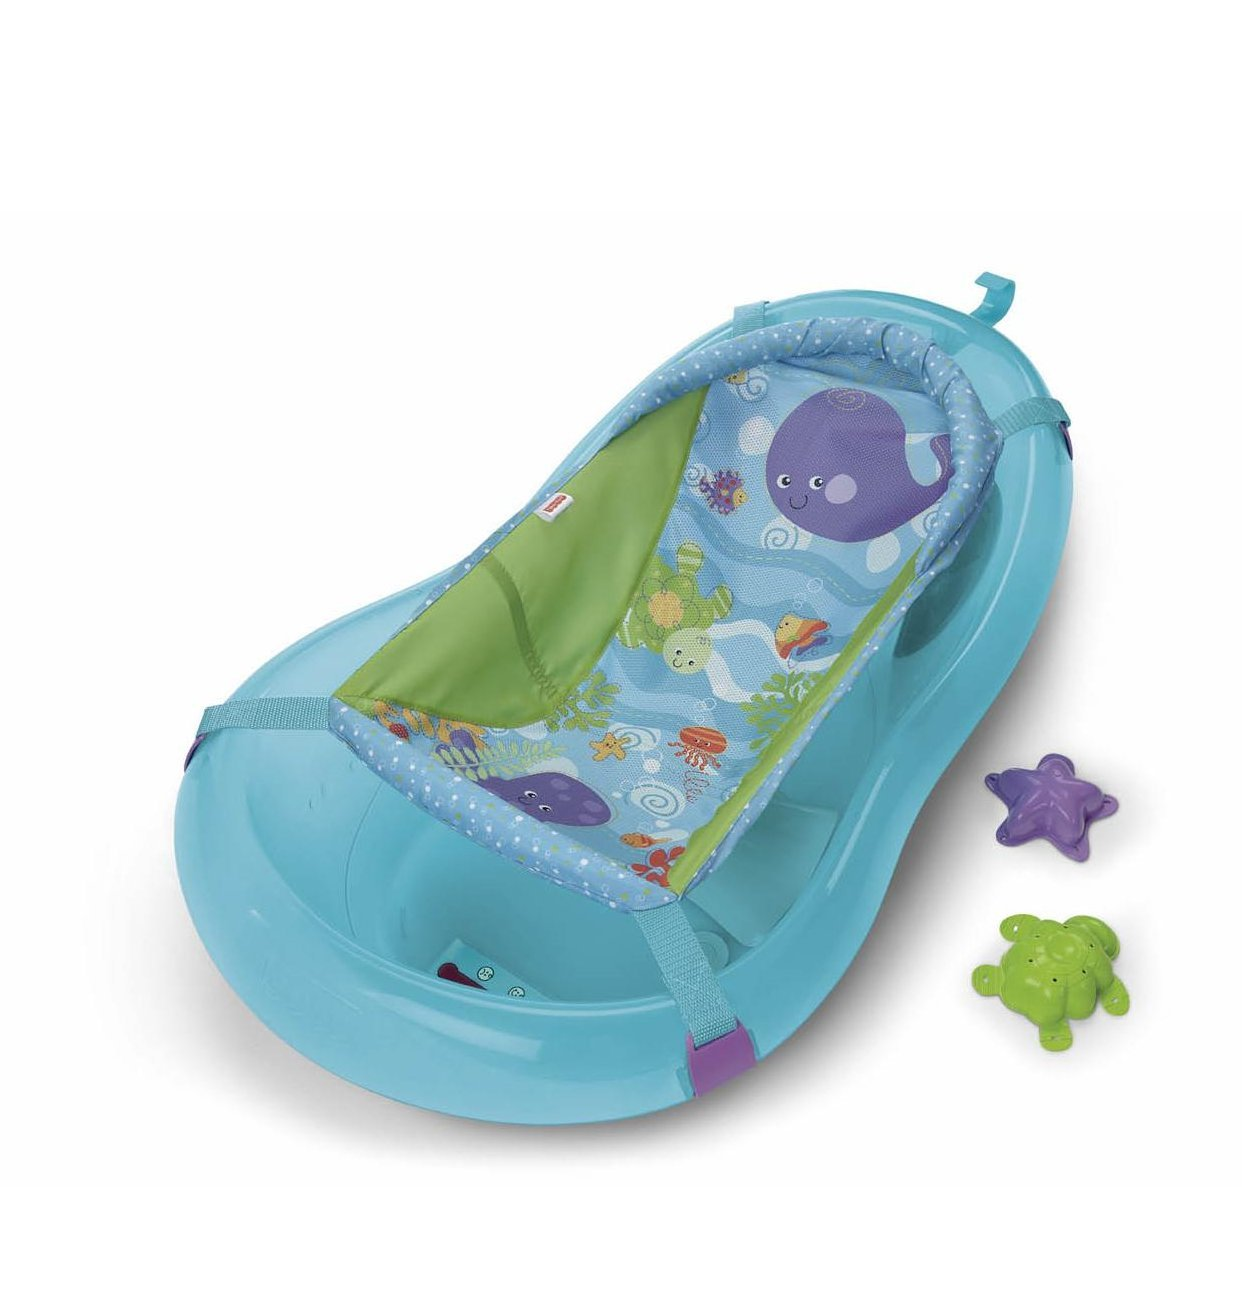 Amazon.com: Fisher-Price Ocean Wonders Aquarium Bath Center: Baby